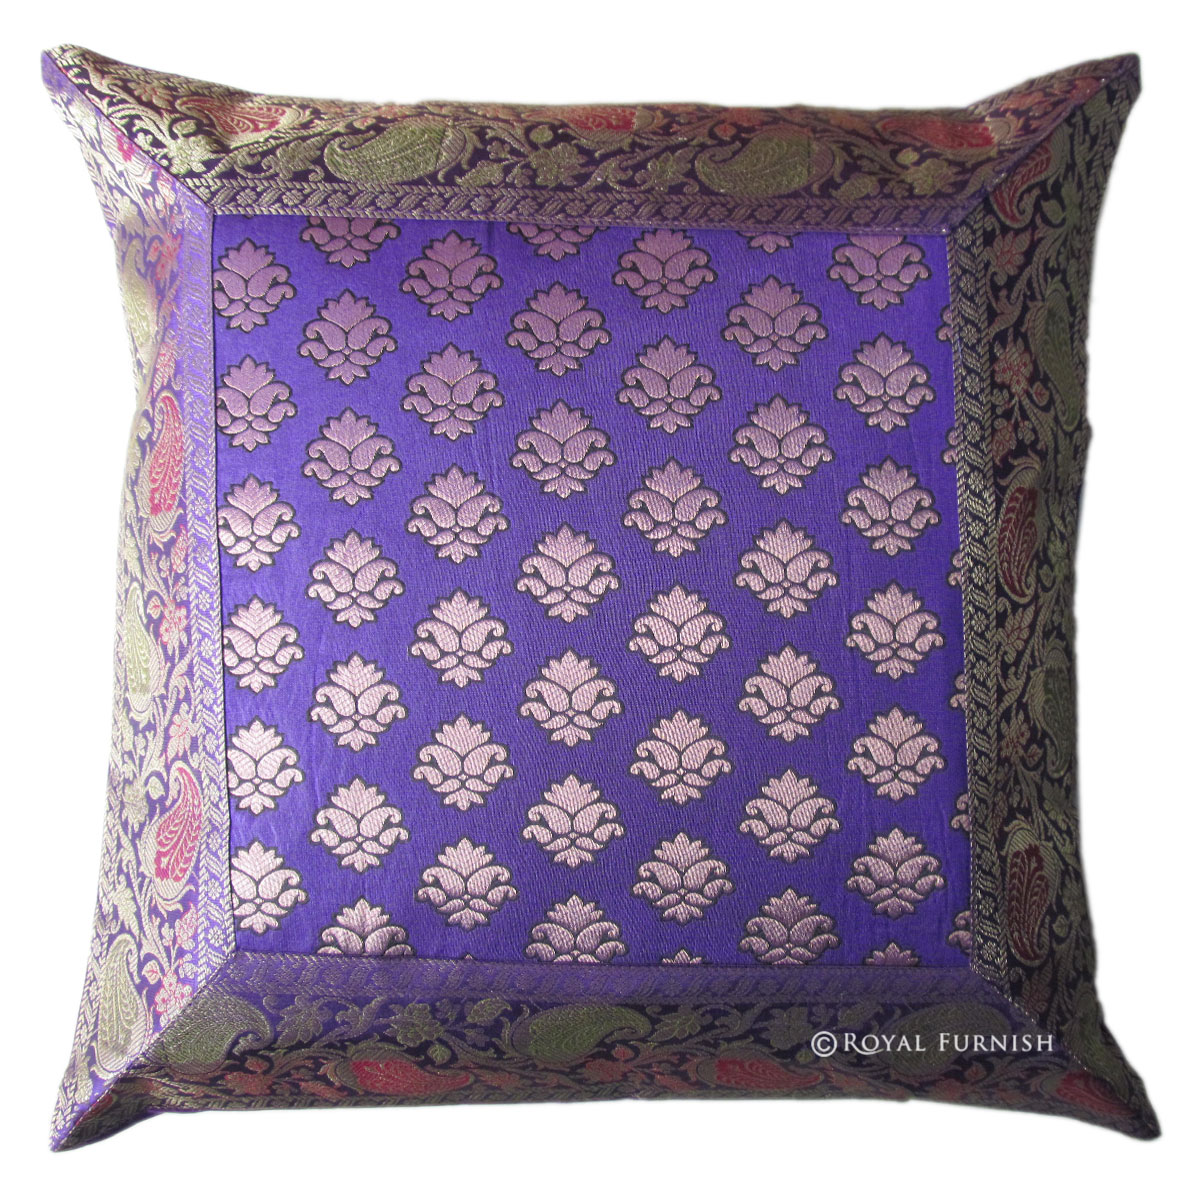 Blue Decorative India Silk Brocade Floral Throw Pillow Sham  ~ How To Coordinate Throw Pillows For Sofa And Chairs